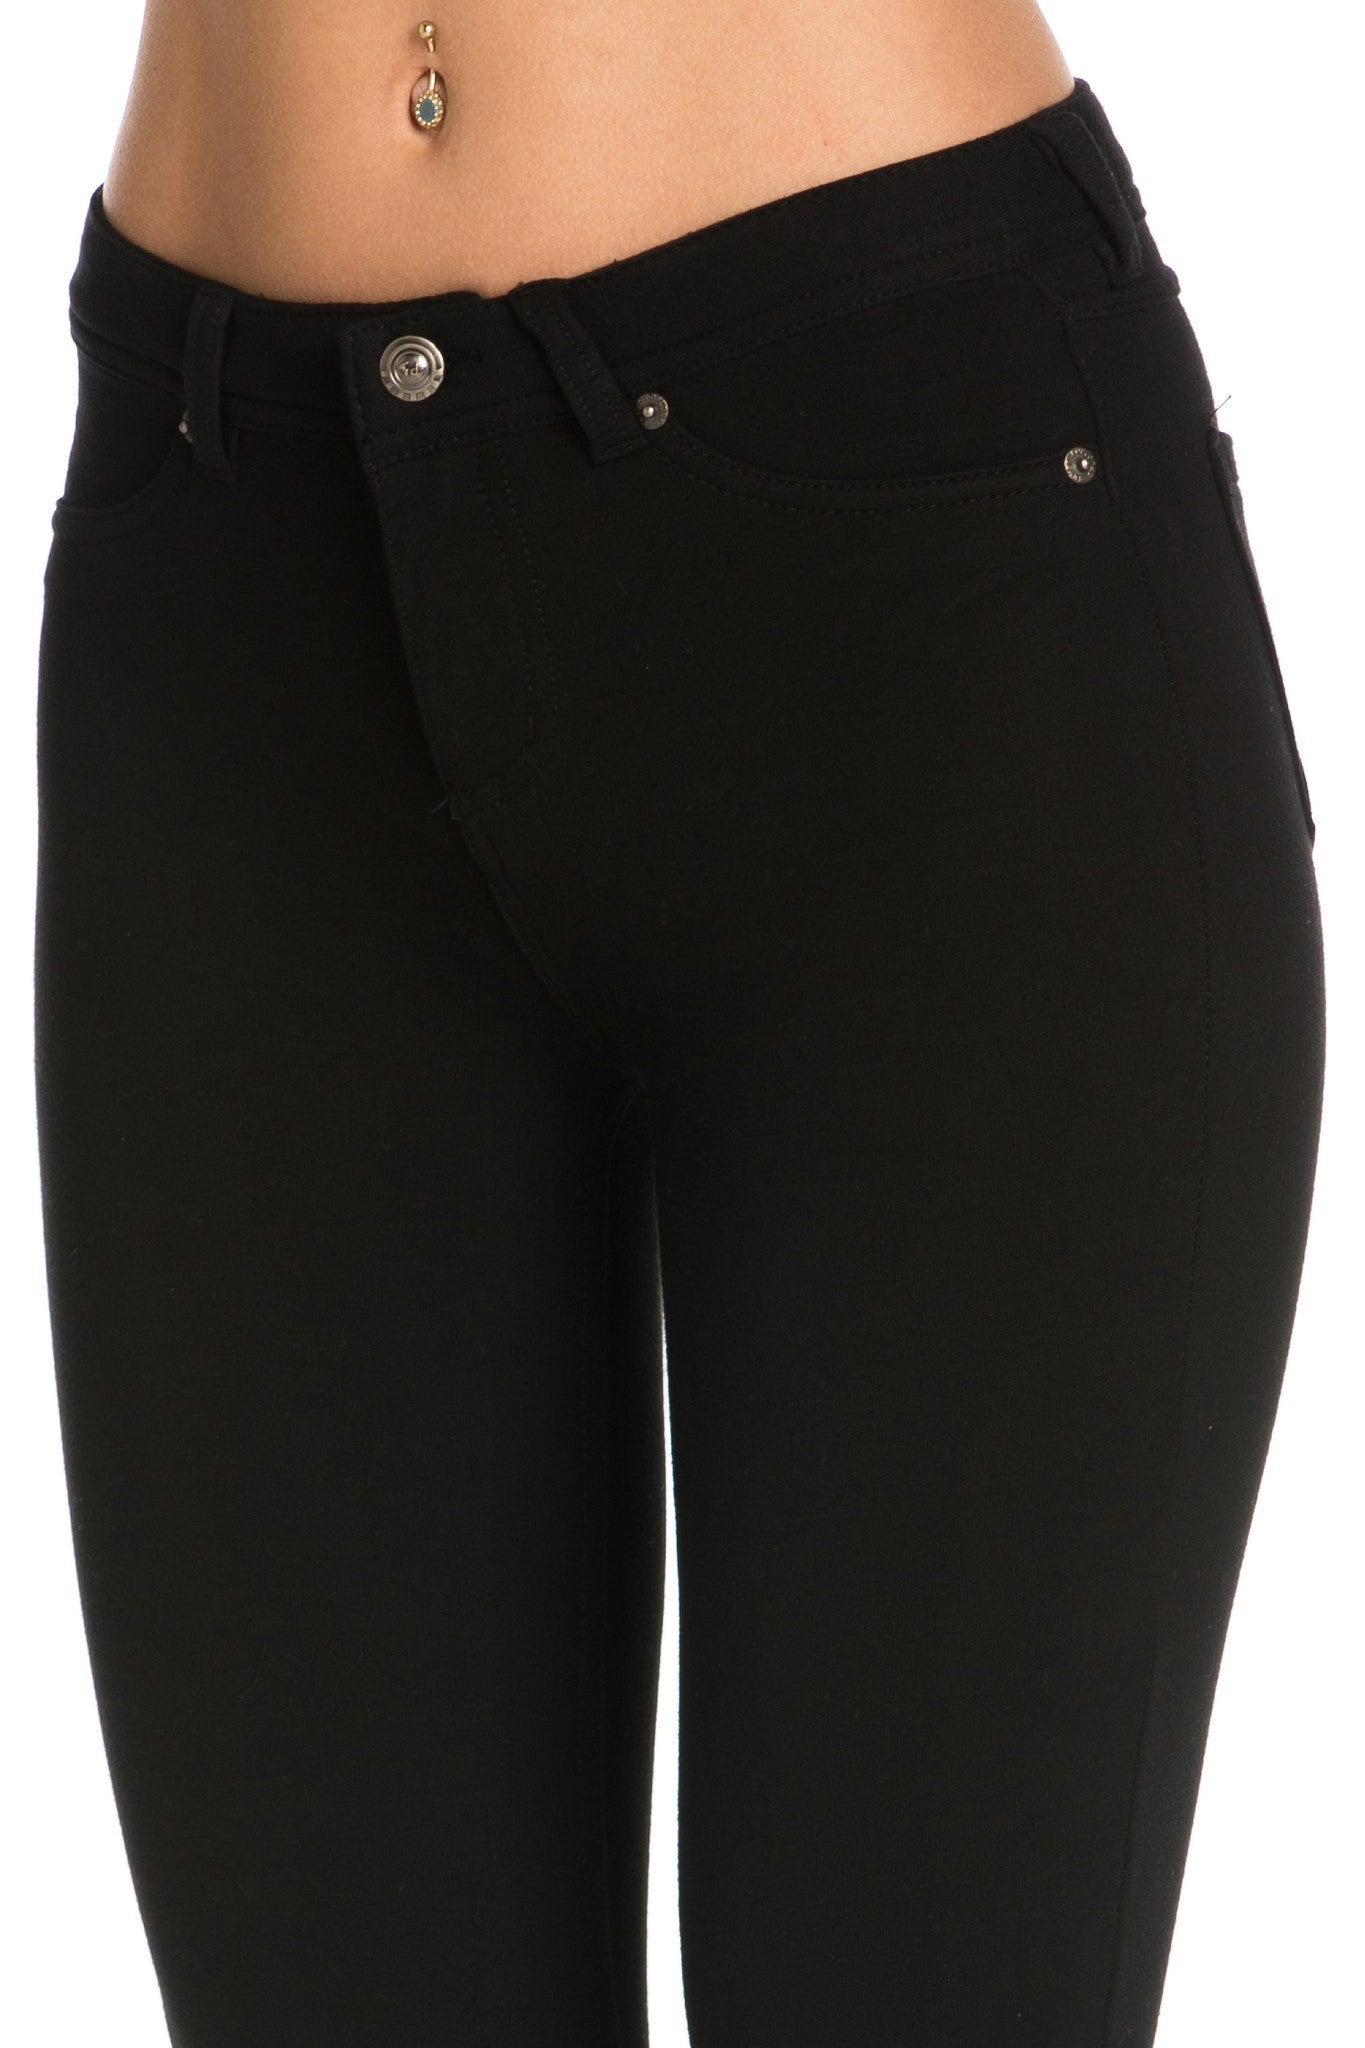 Stretch Skinny Knit Jegging Pants (Black) - Poplooks